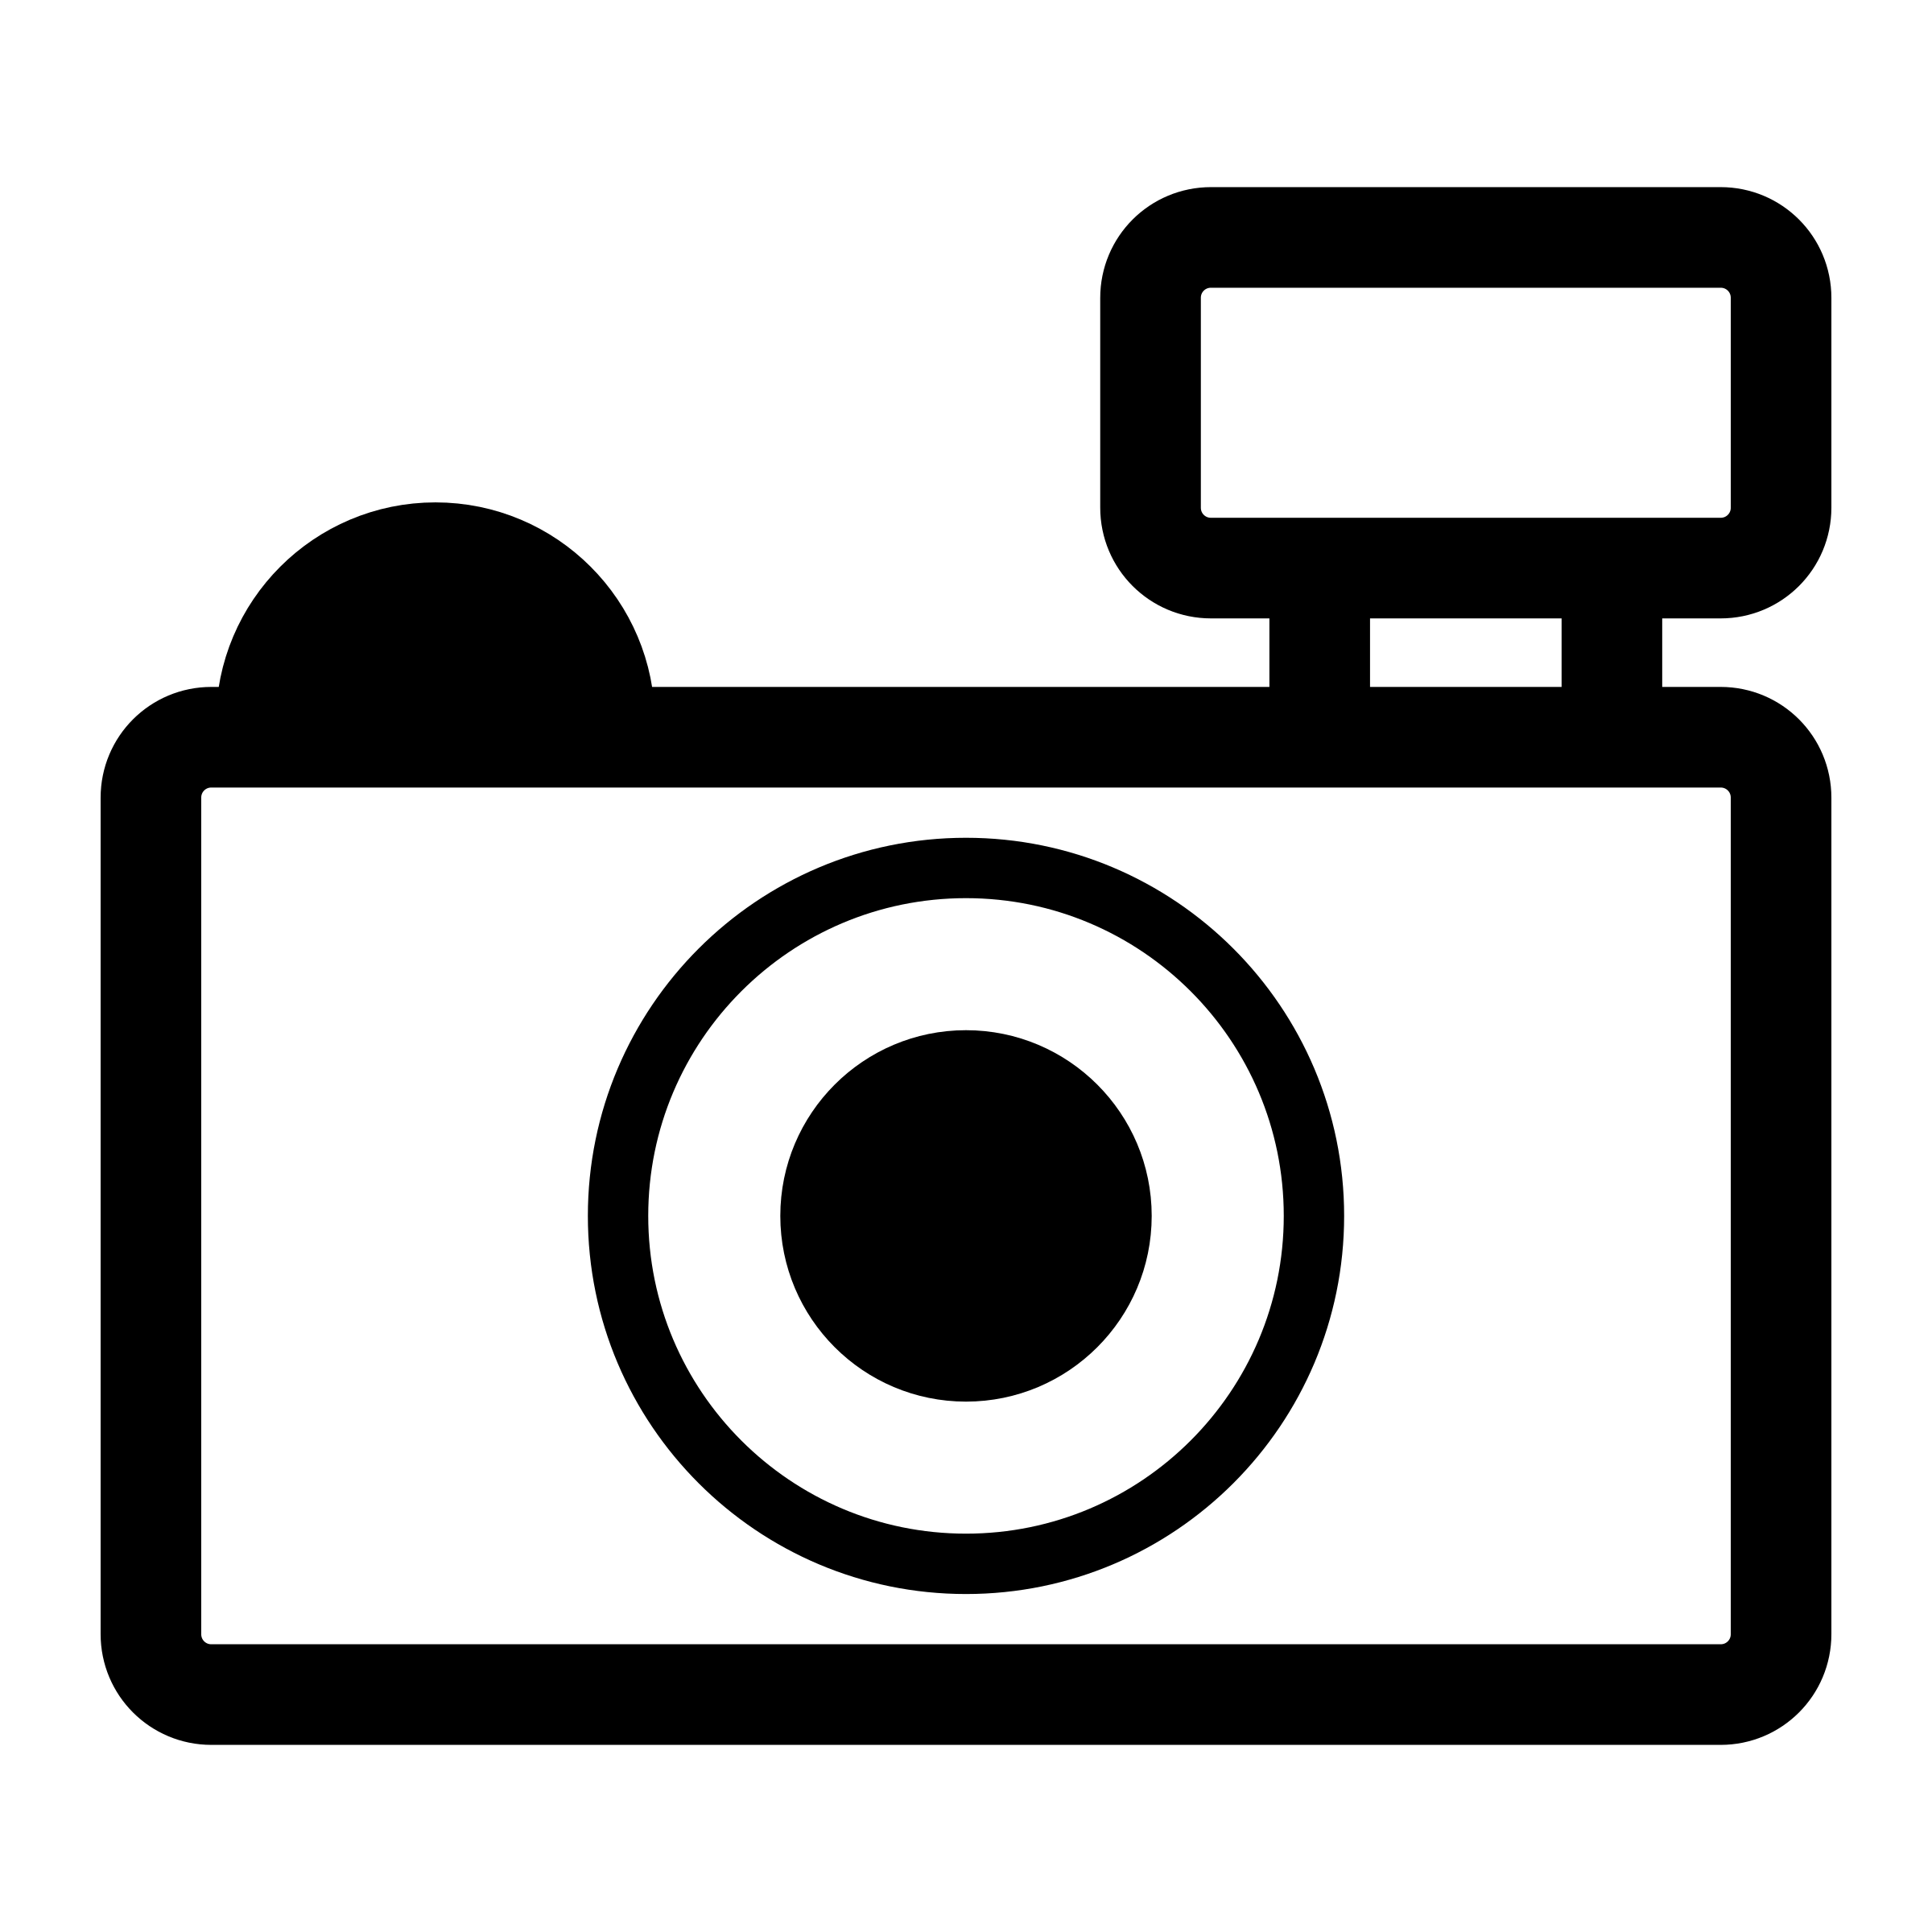 2400x2400 Simple Clipart Vintage Camera